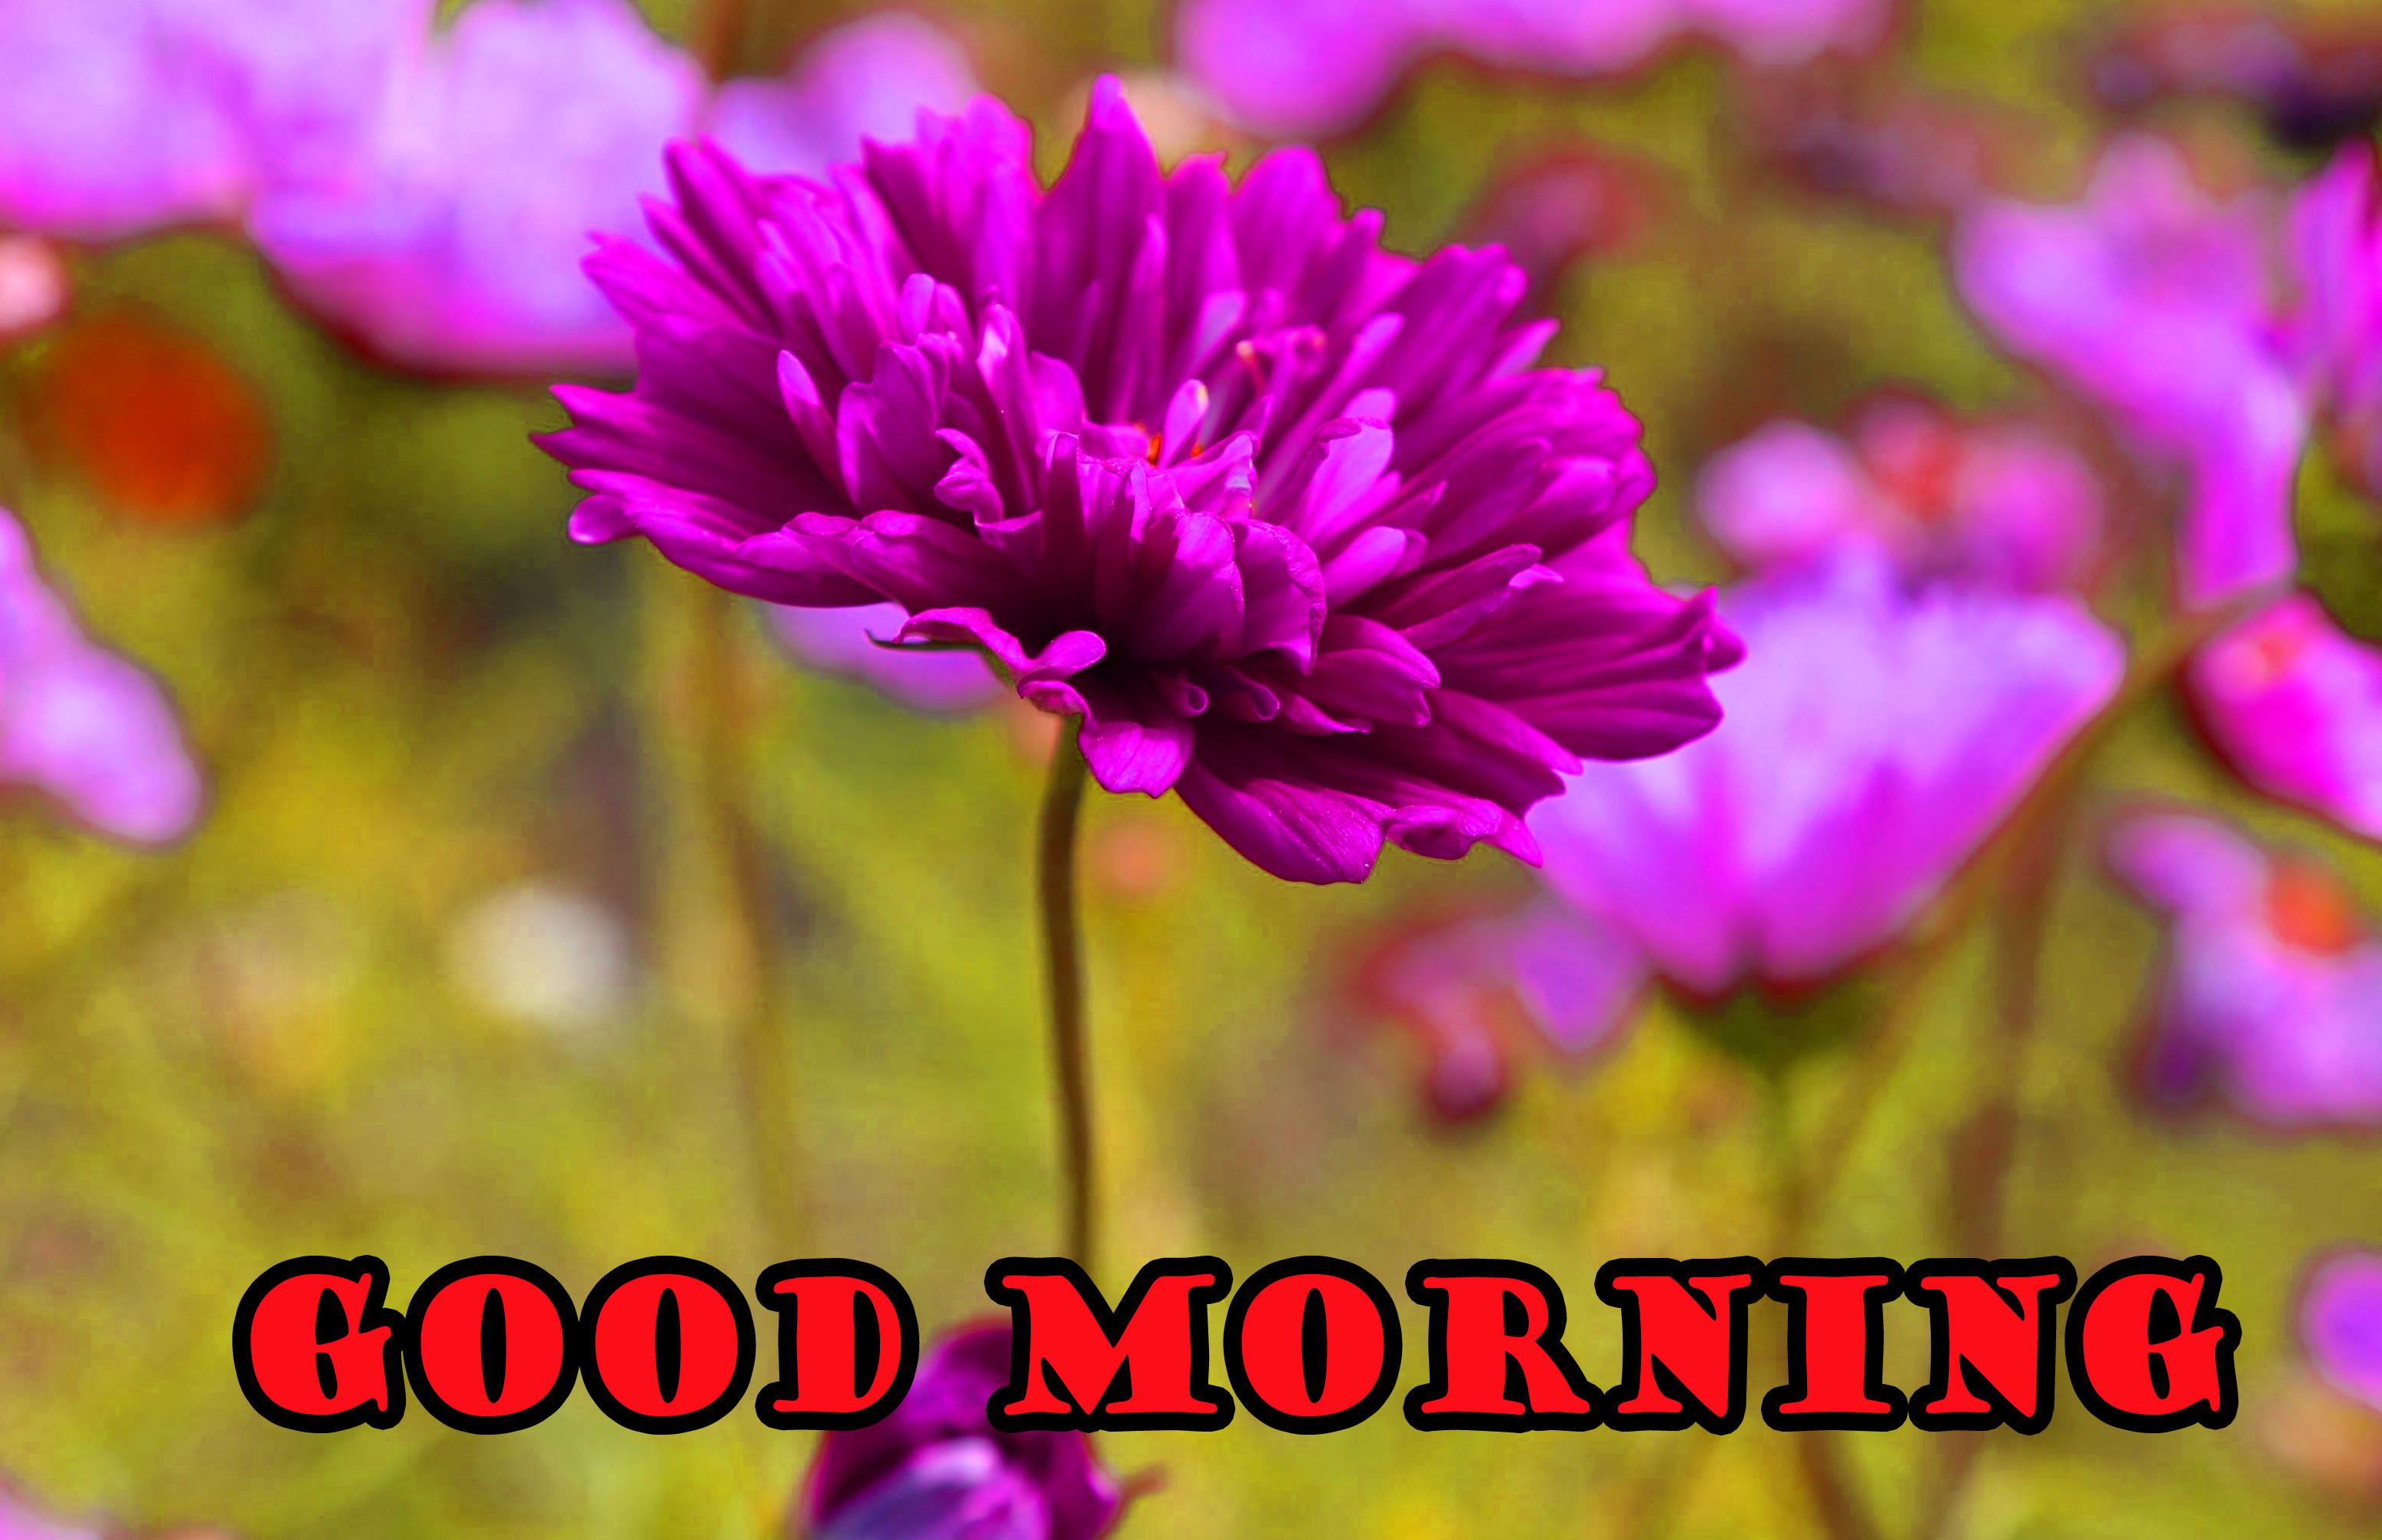 Good Morning Flowers Wallpaper Pictures Images HD